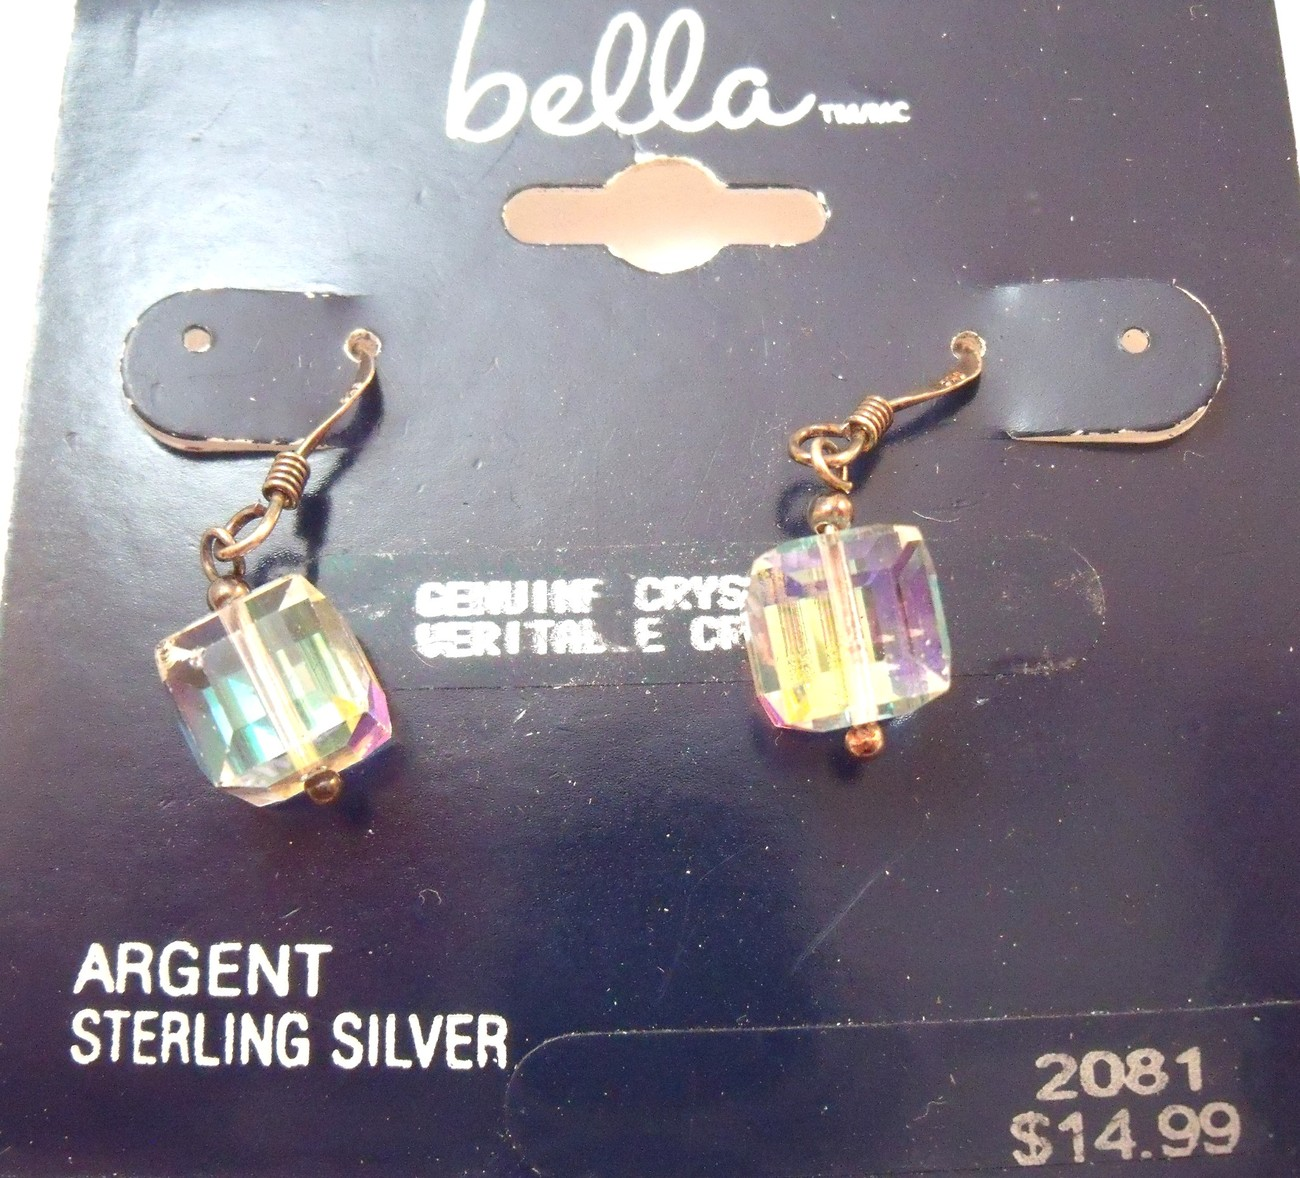 Five pairs of steling silver earrings NOS one with crystal cube dangles